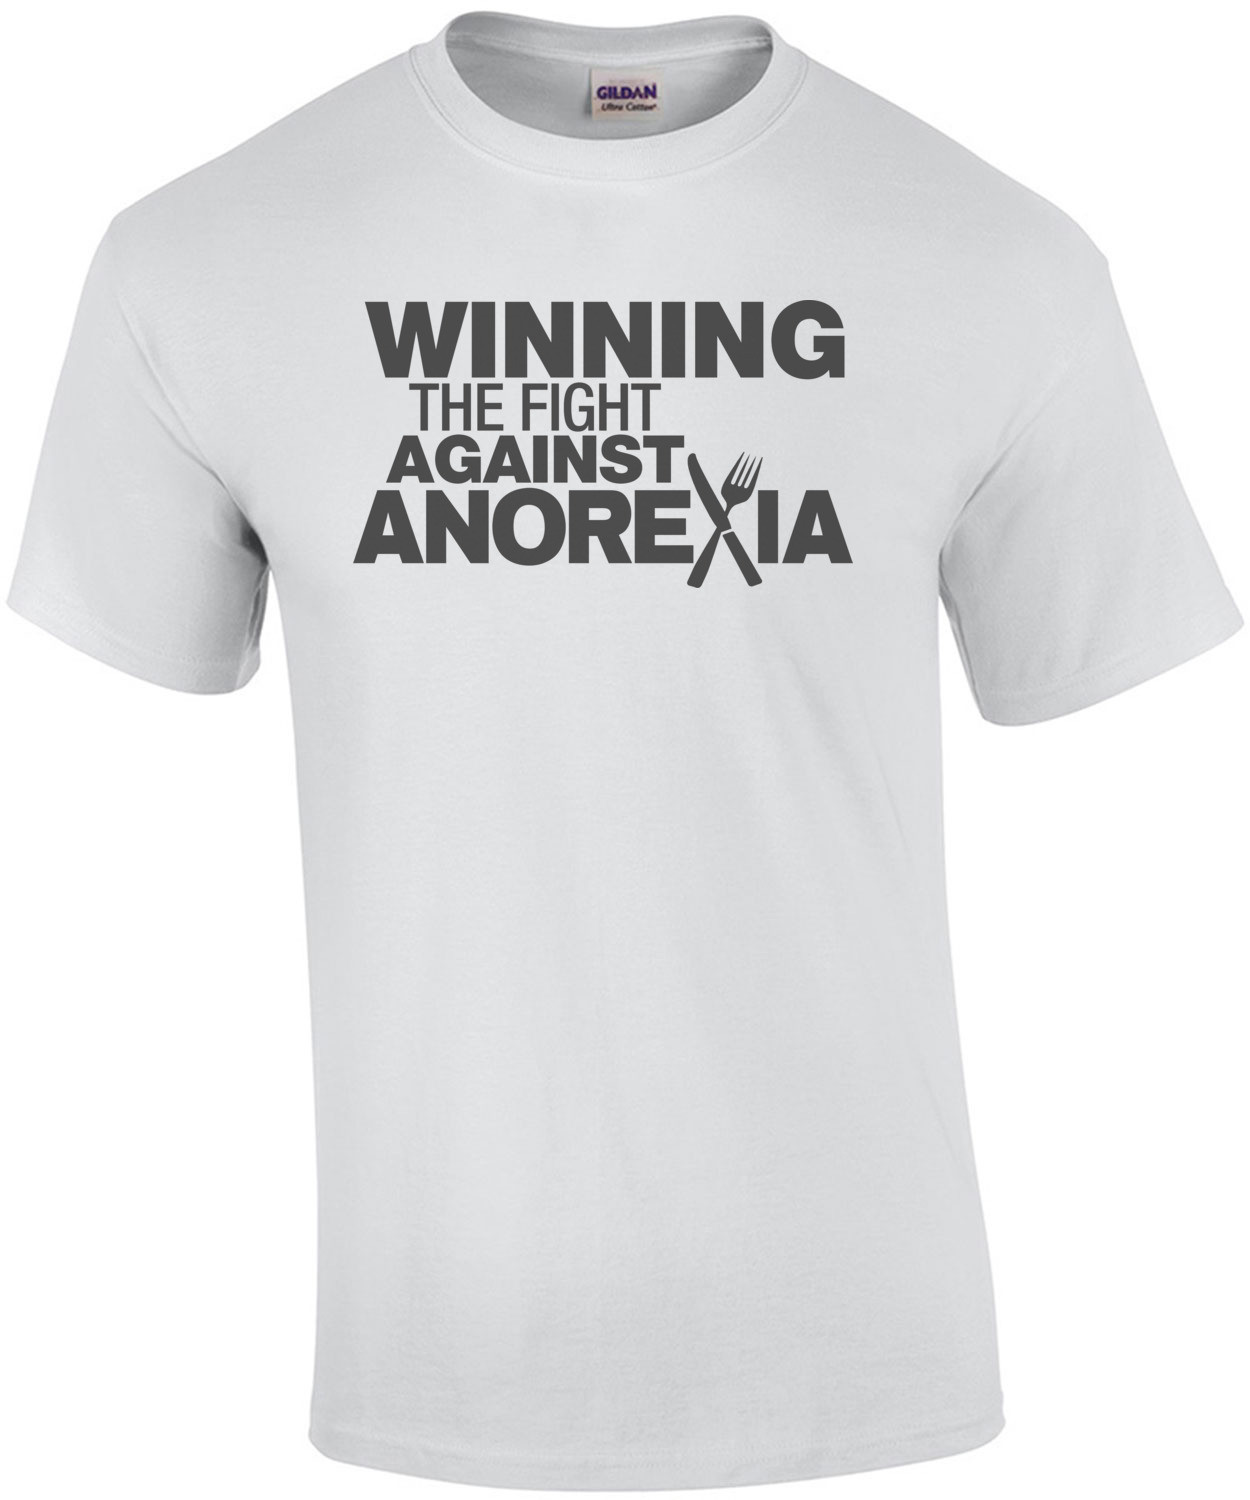 WINNING IN THE FIGHT AGAINST ANOREXIA